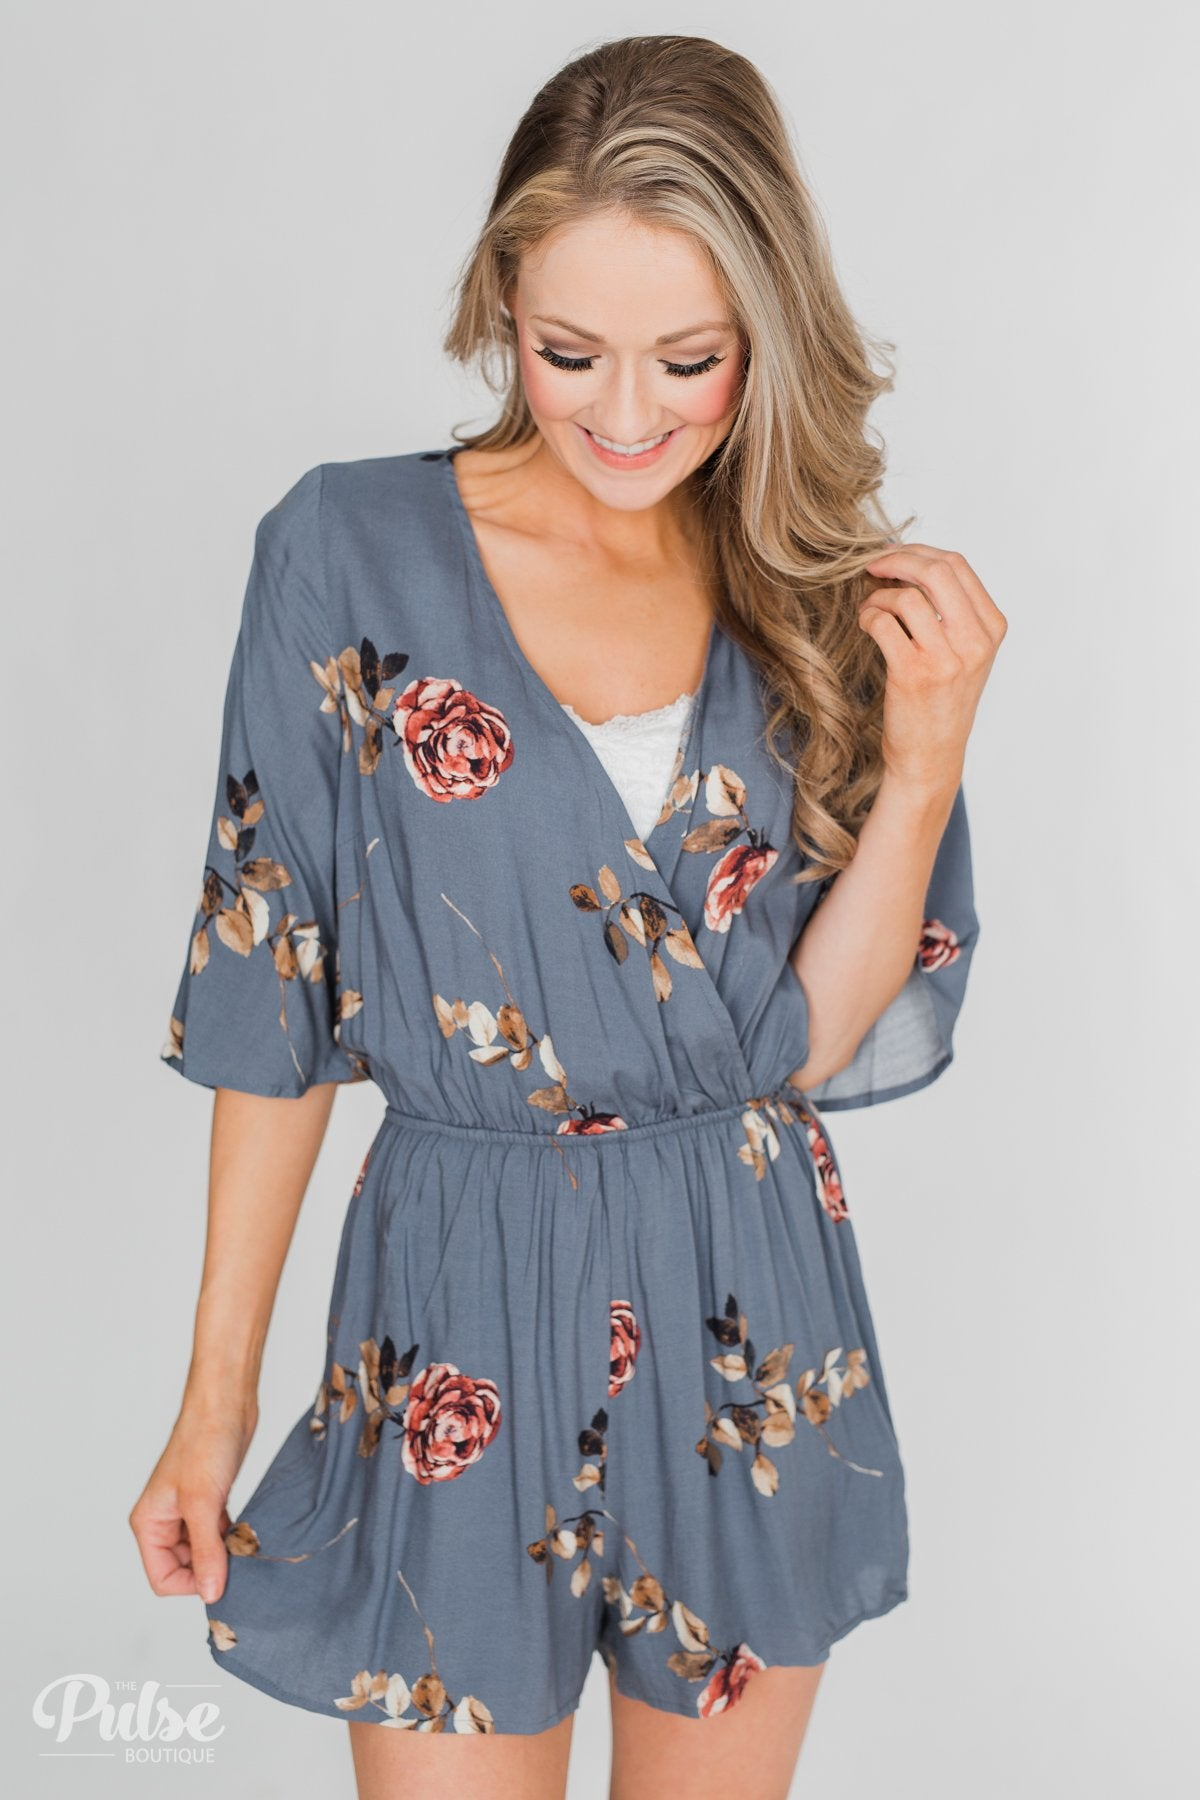 Bloom Where You're Planted Floral Romper - Steel Blue